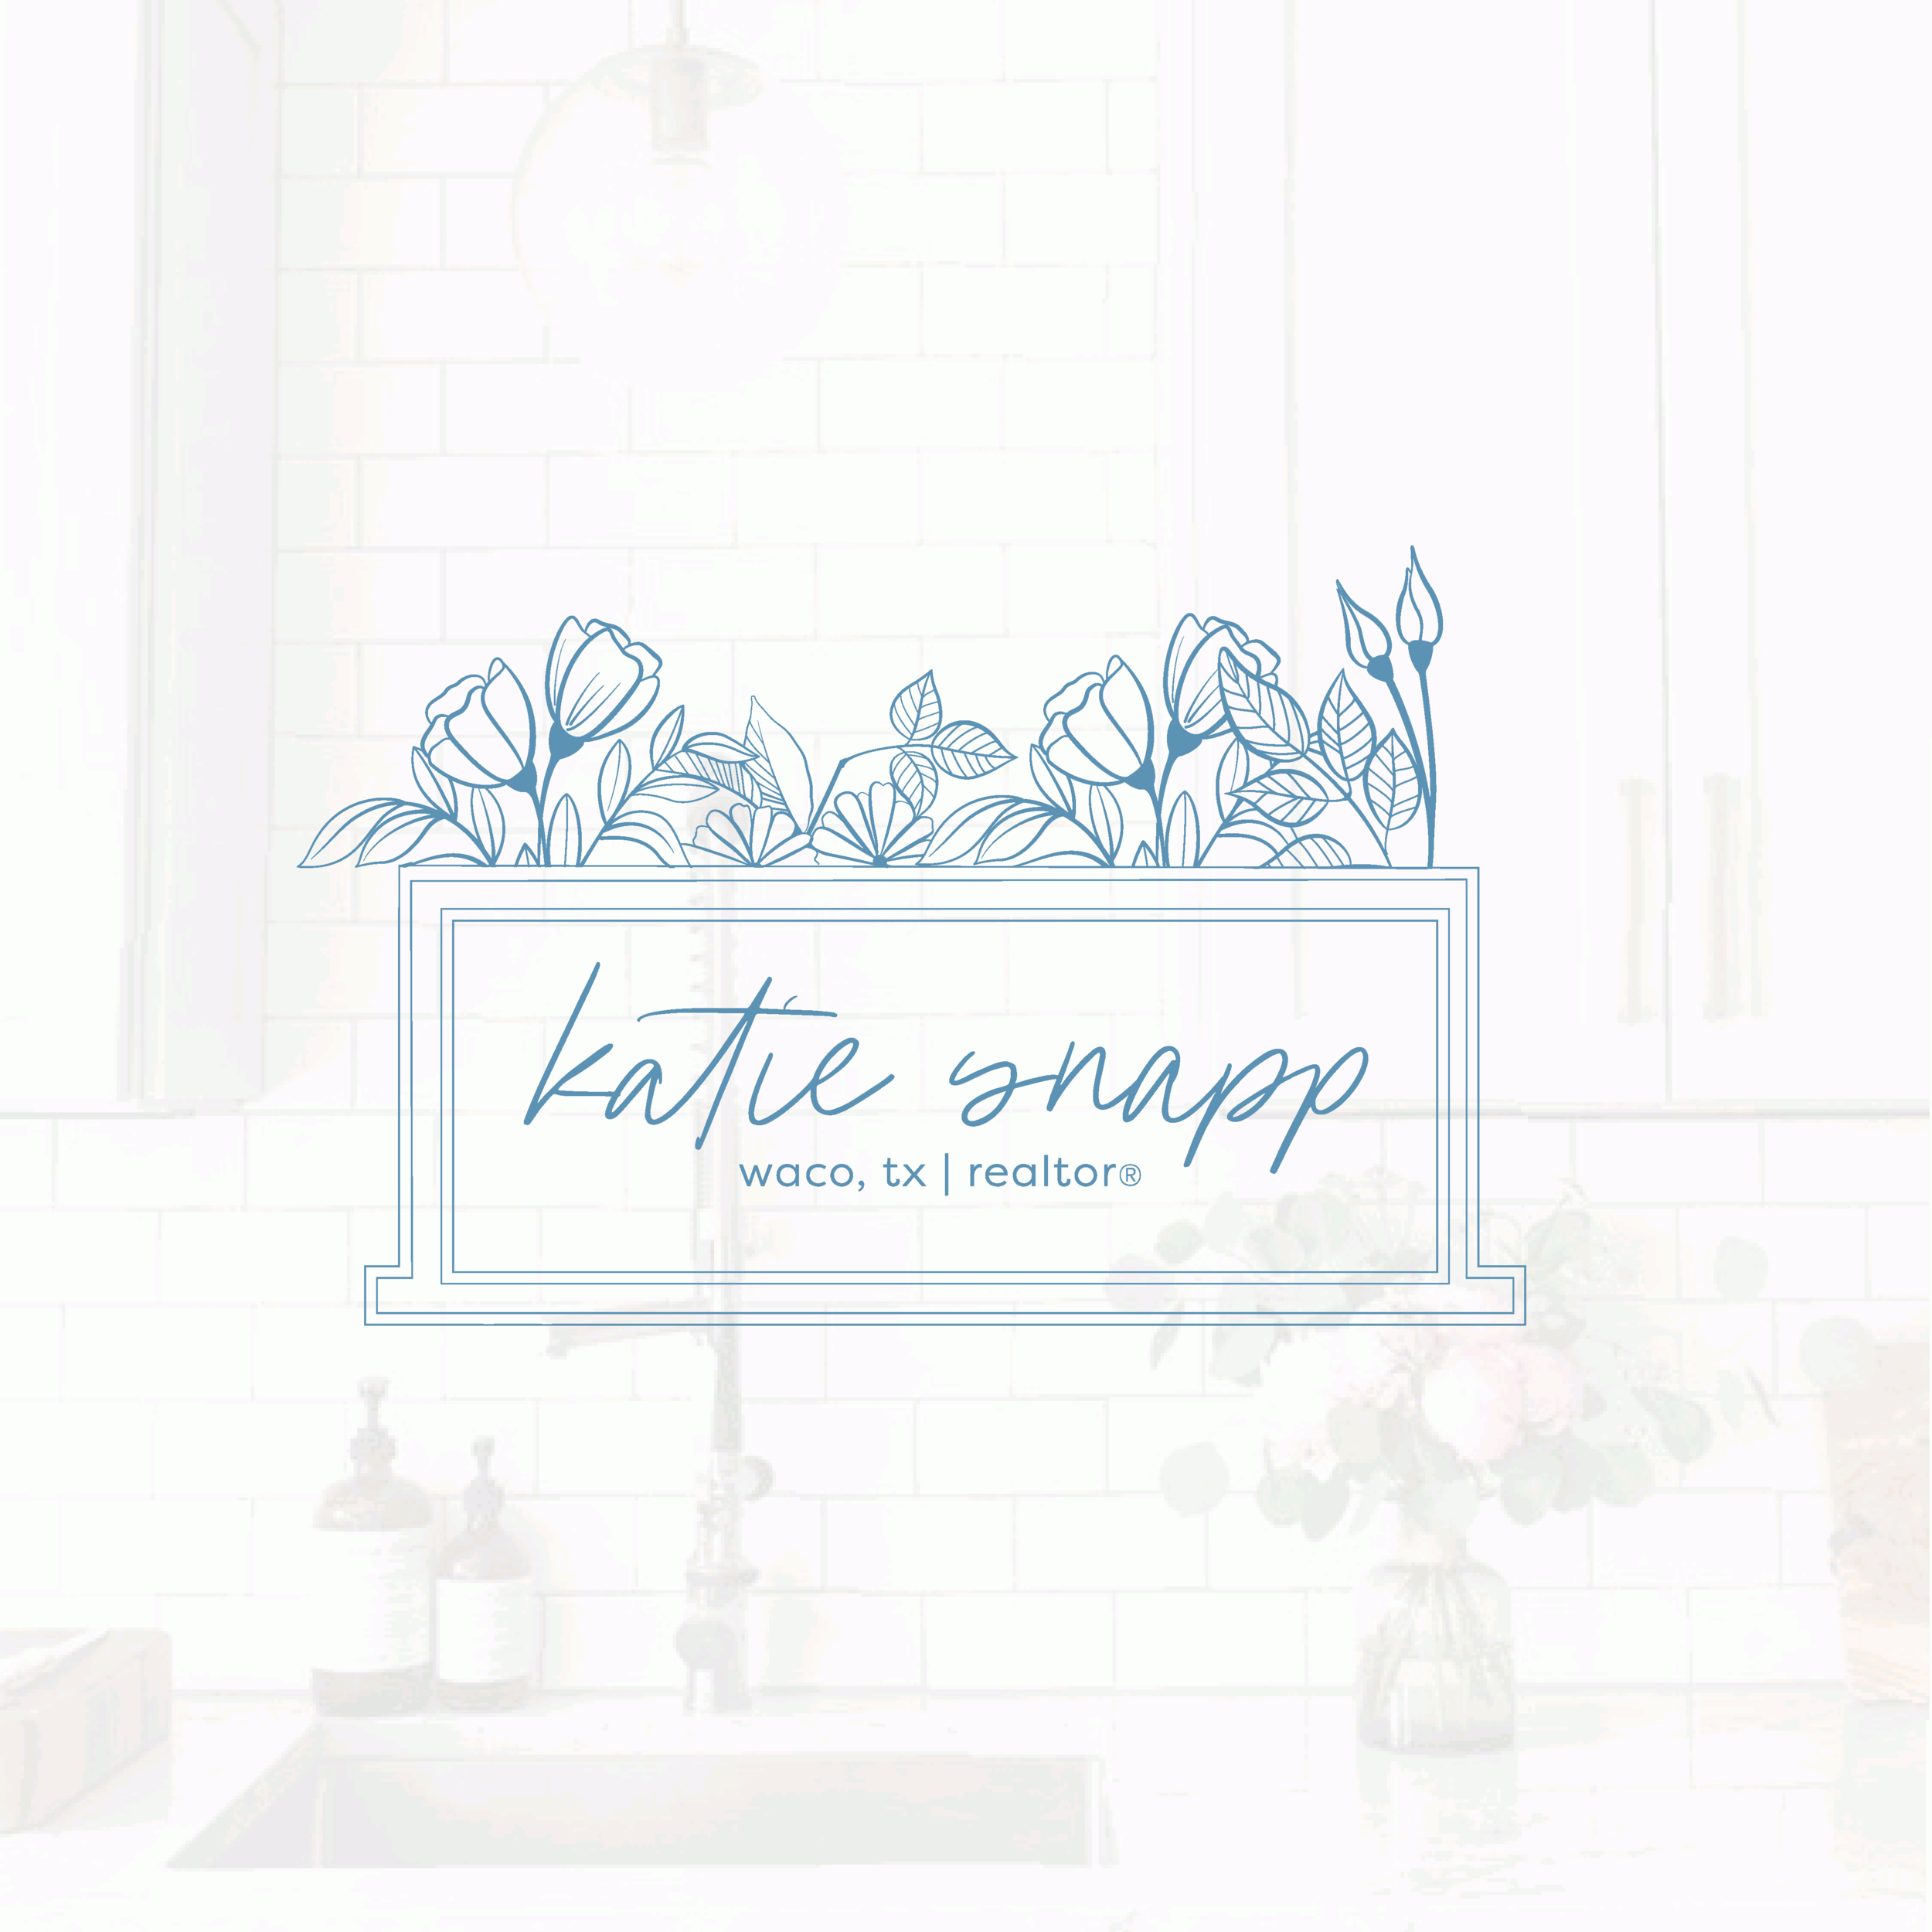 Katie Snapp Waco Camille Johnson Realtor Blogger Brand and Logo Design by Kindly by Kelsea